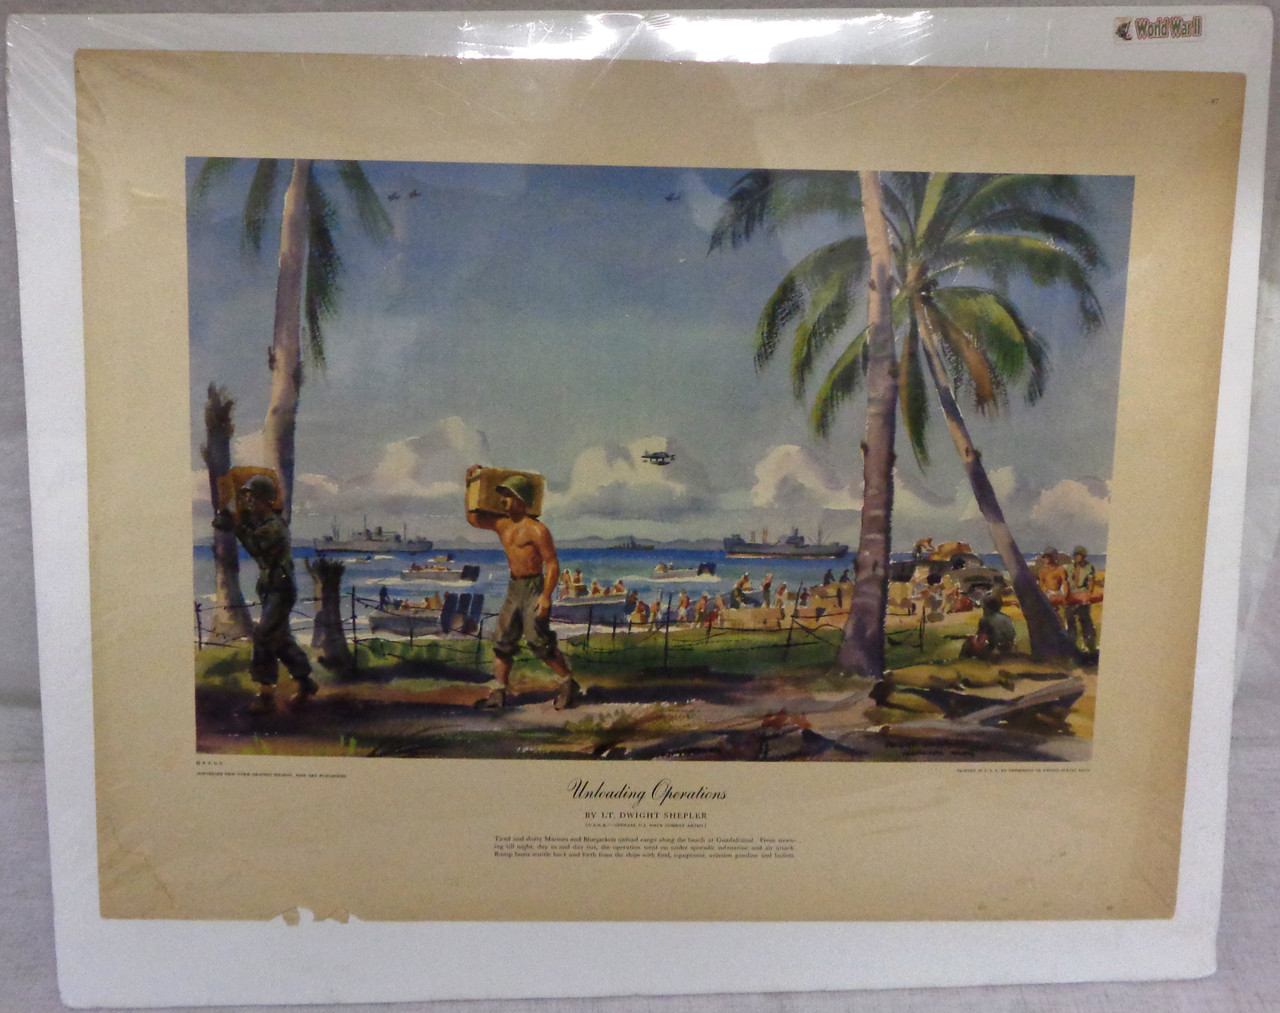 Unloading Operations WWII Water Color Print by Lt. Dwight Shepler